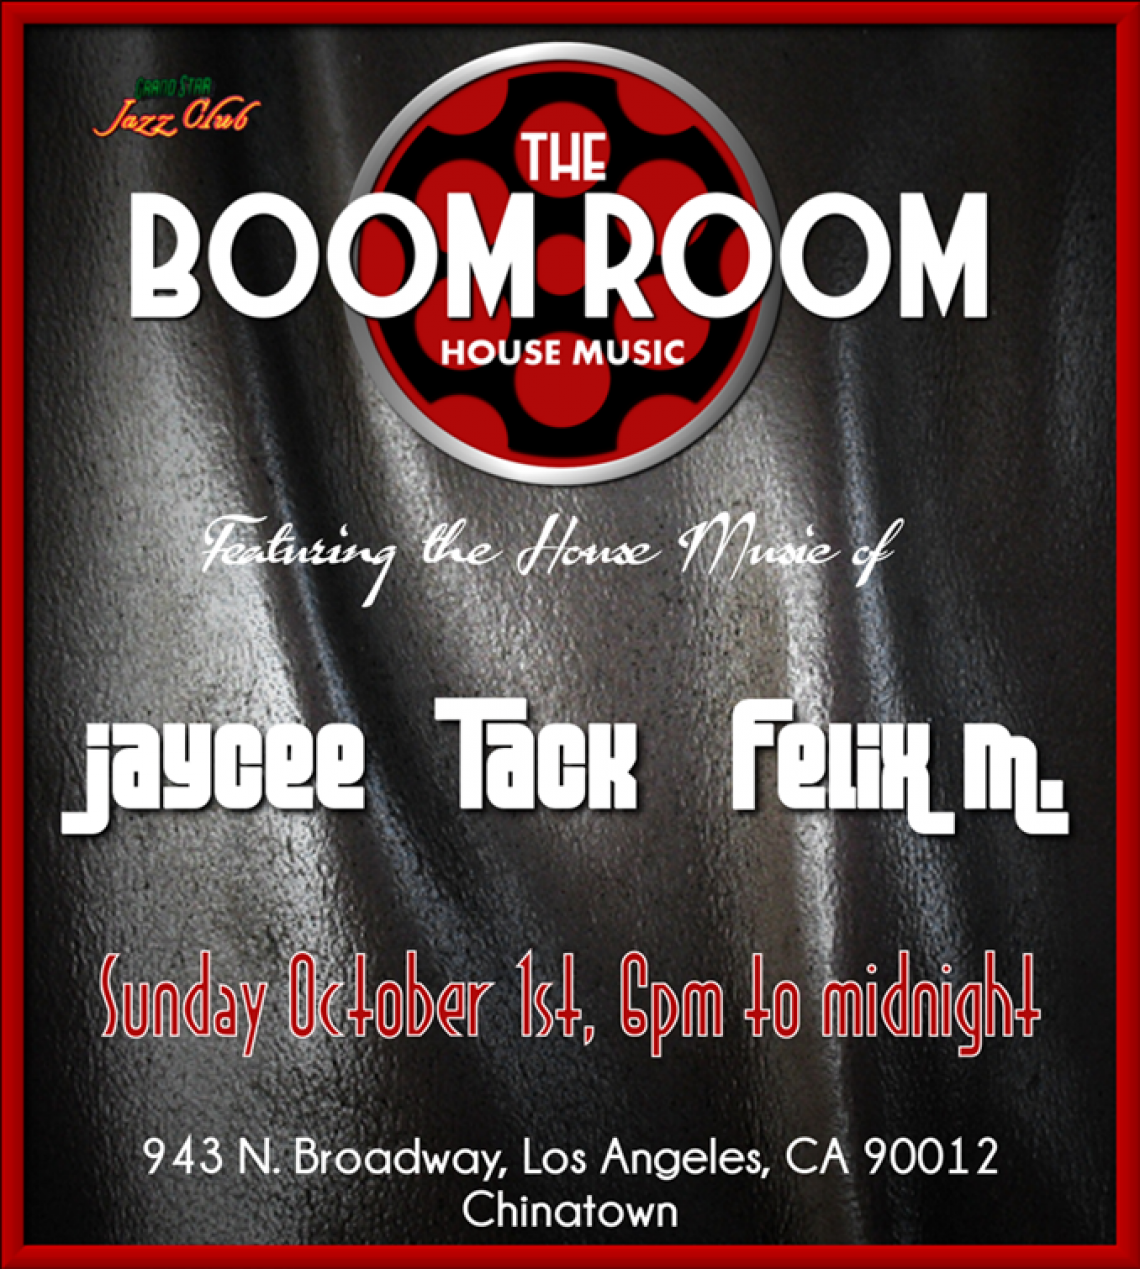 The Boom Room House Music Party at the Grand Star - Chinatown